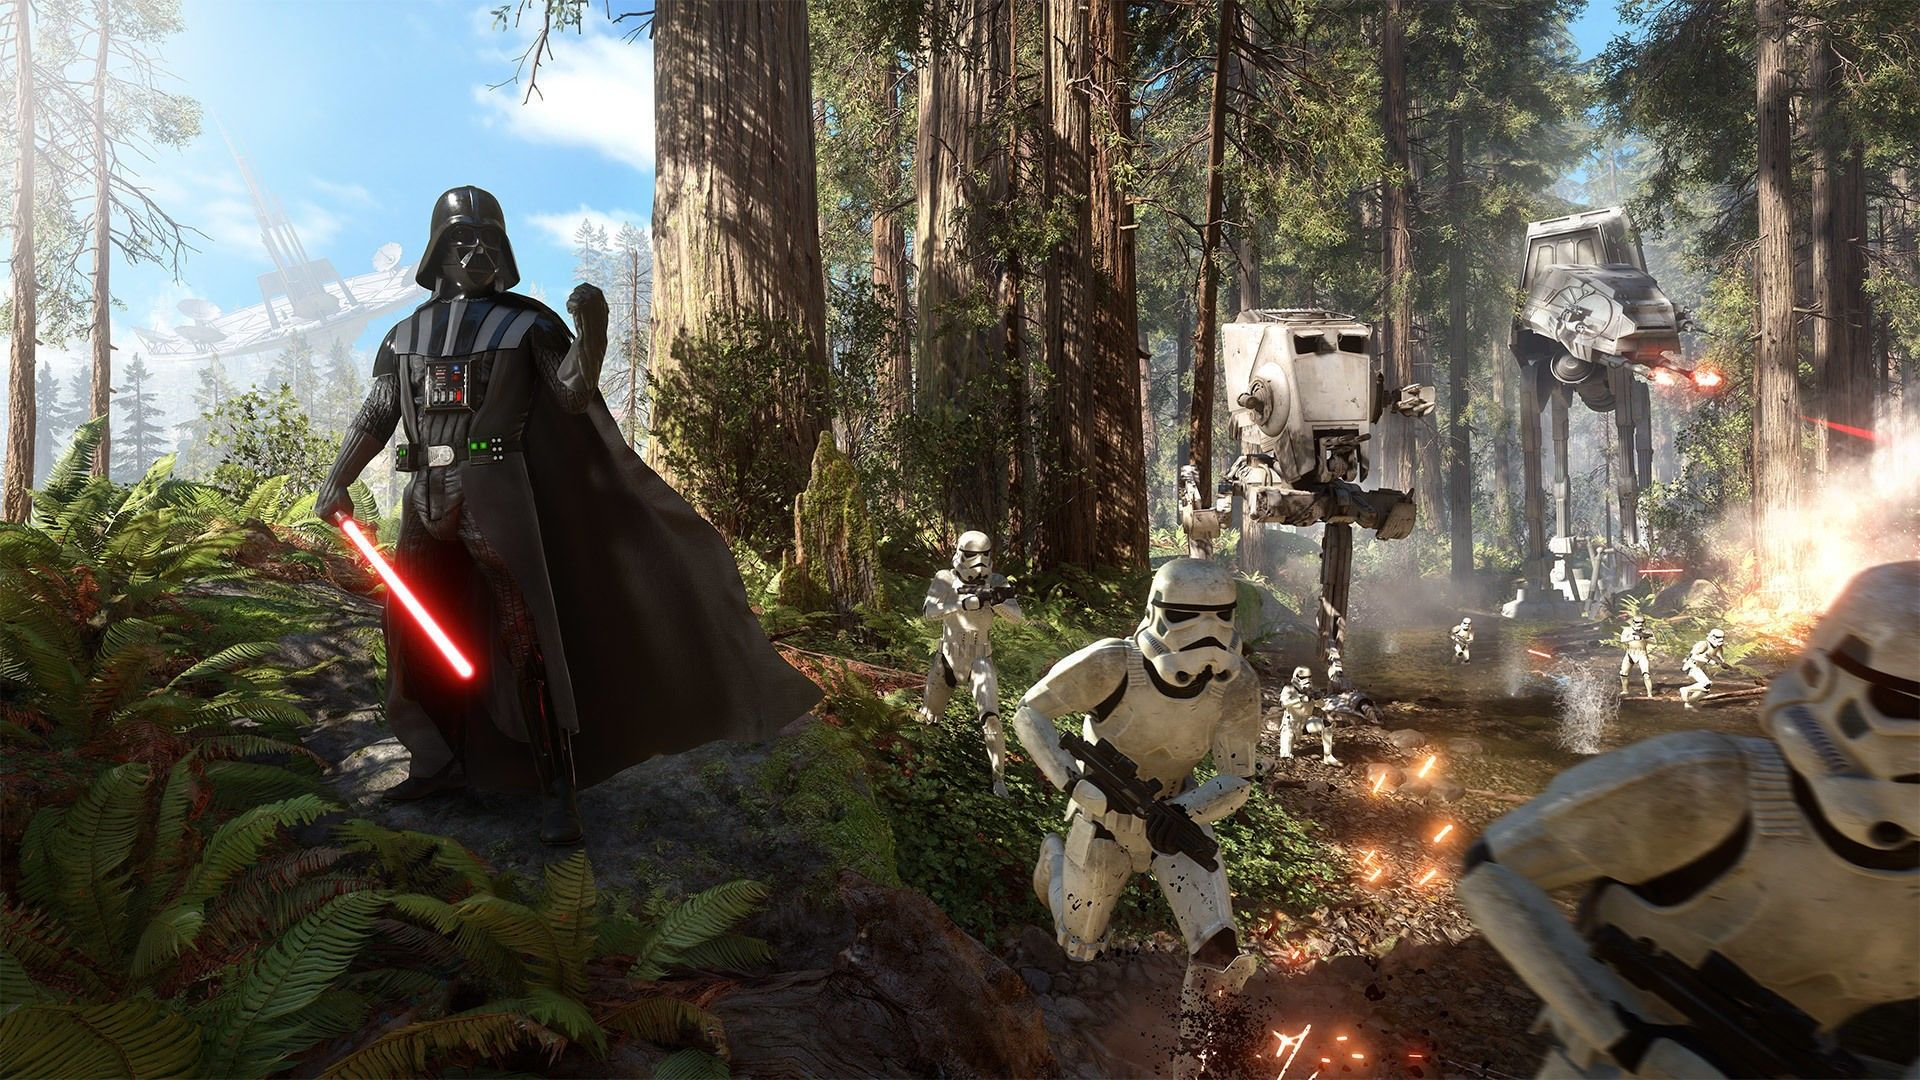 Battle Of Endor Wallpapers Top Free Battle Of Endor Backgrounds Wallpaperaccess